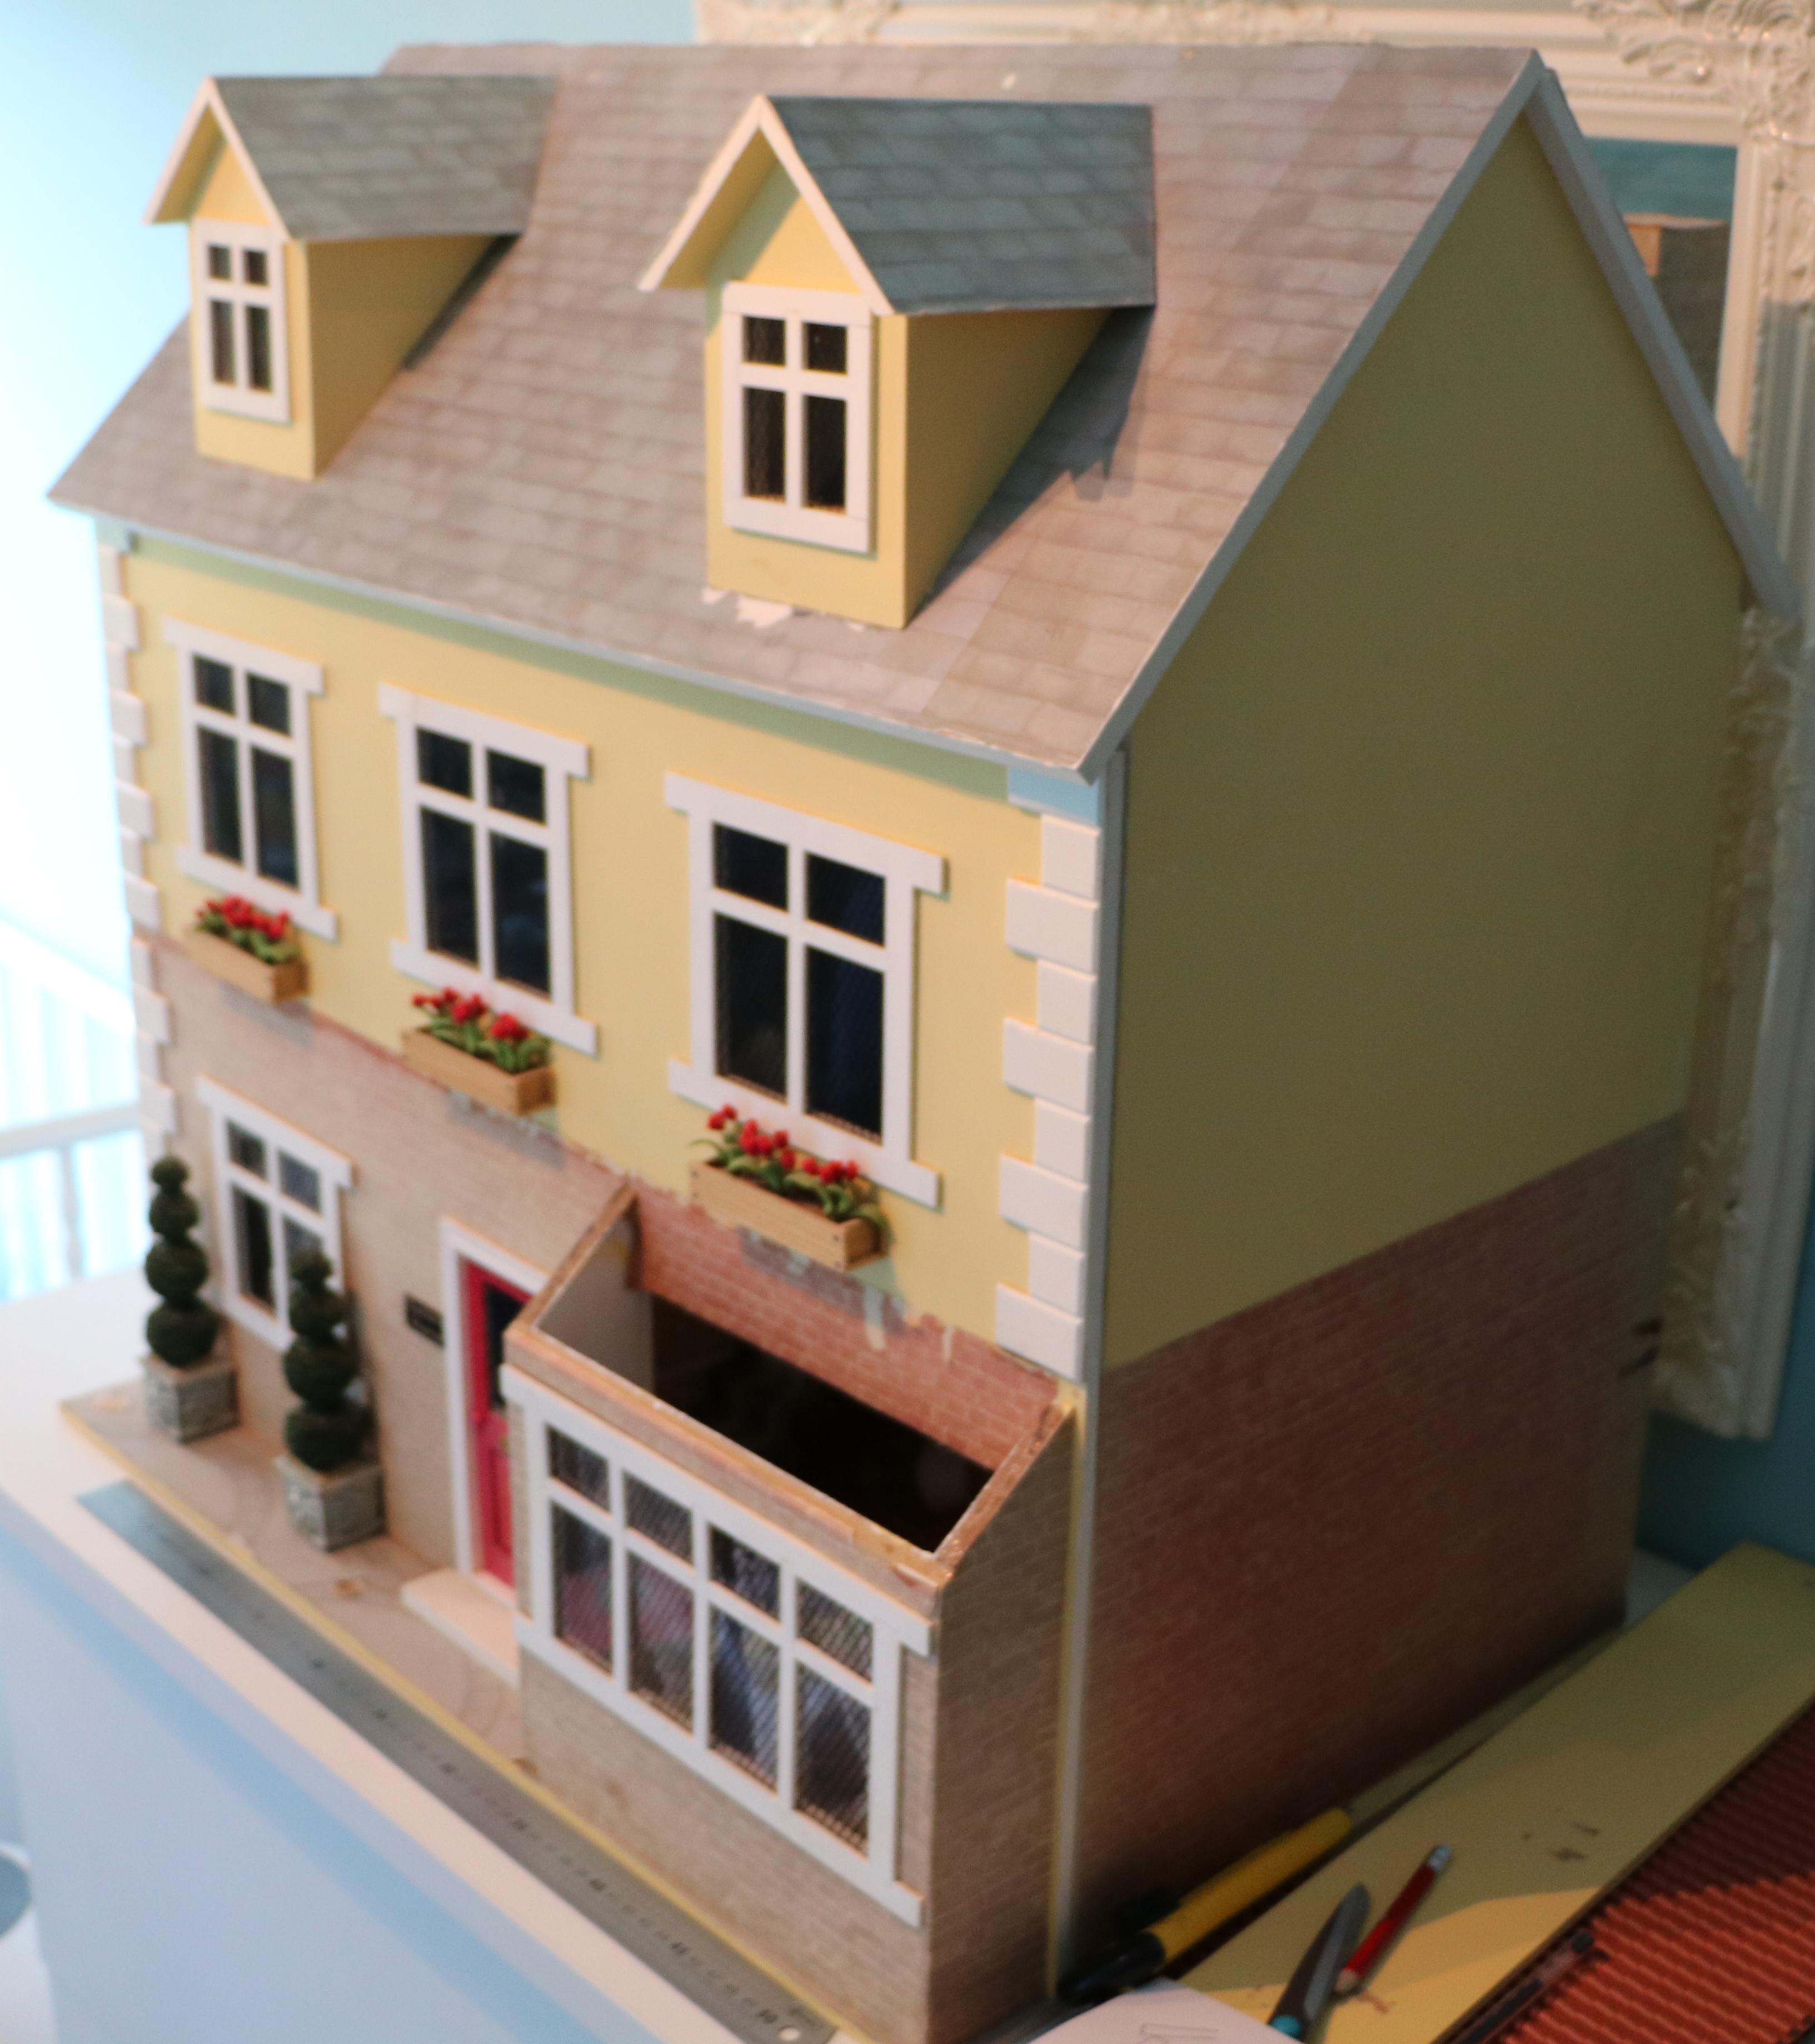 2 storey dolls house with square bay window and 2 dormer windows